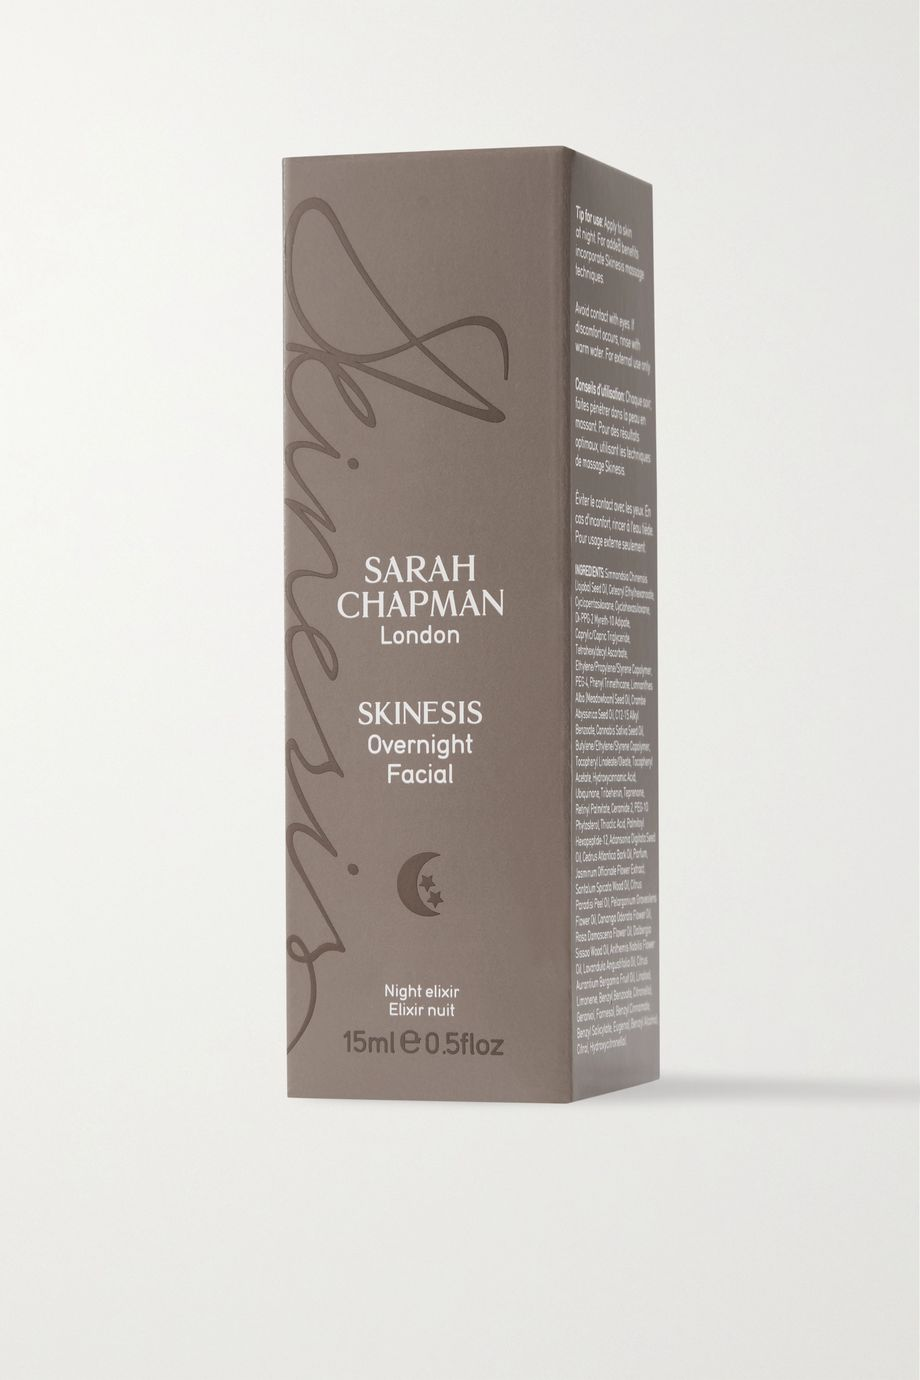 Sarah Chapman Skinesis Overnight Facial, 15ml